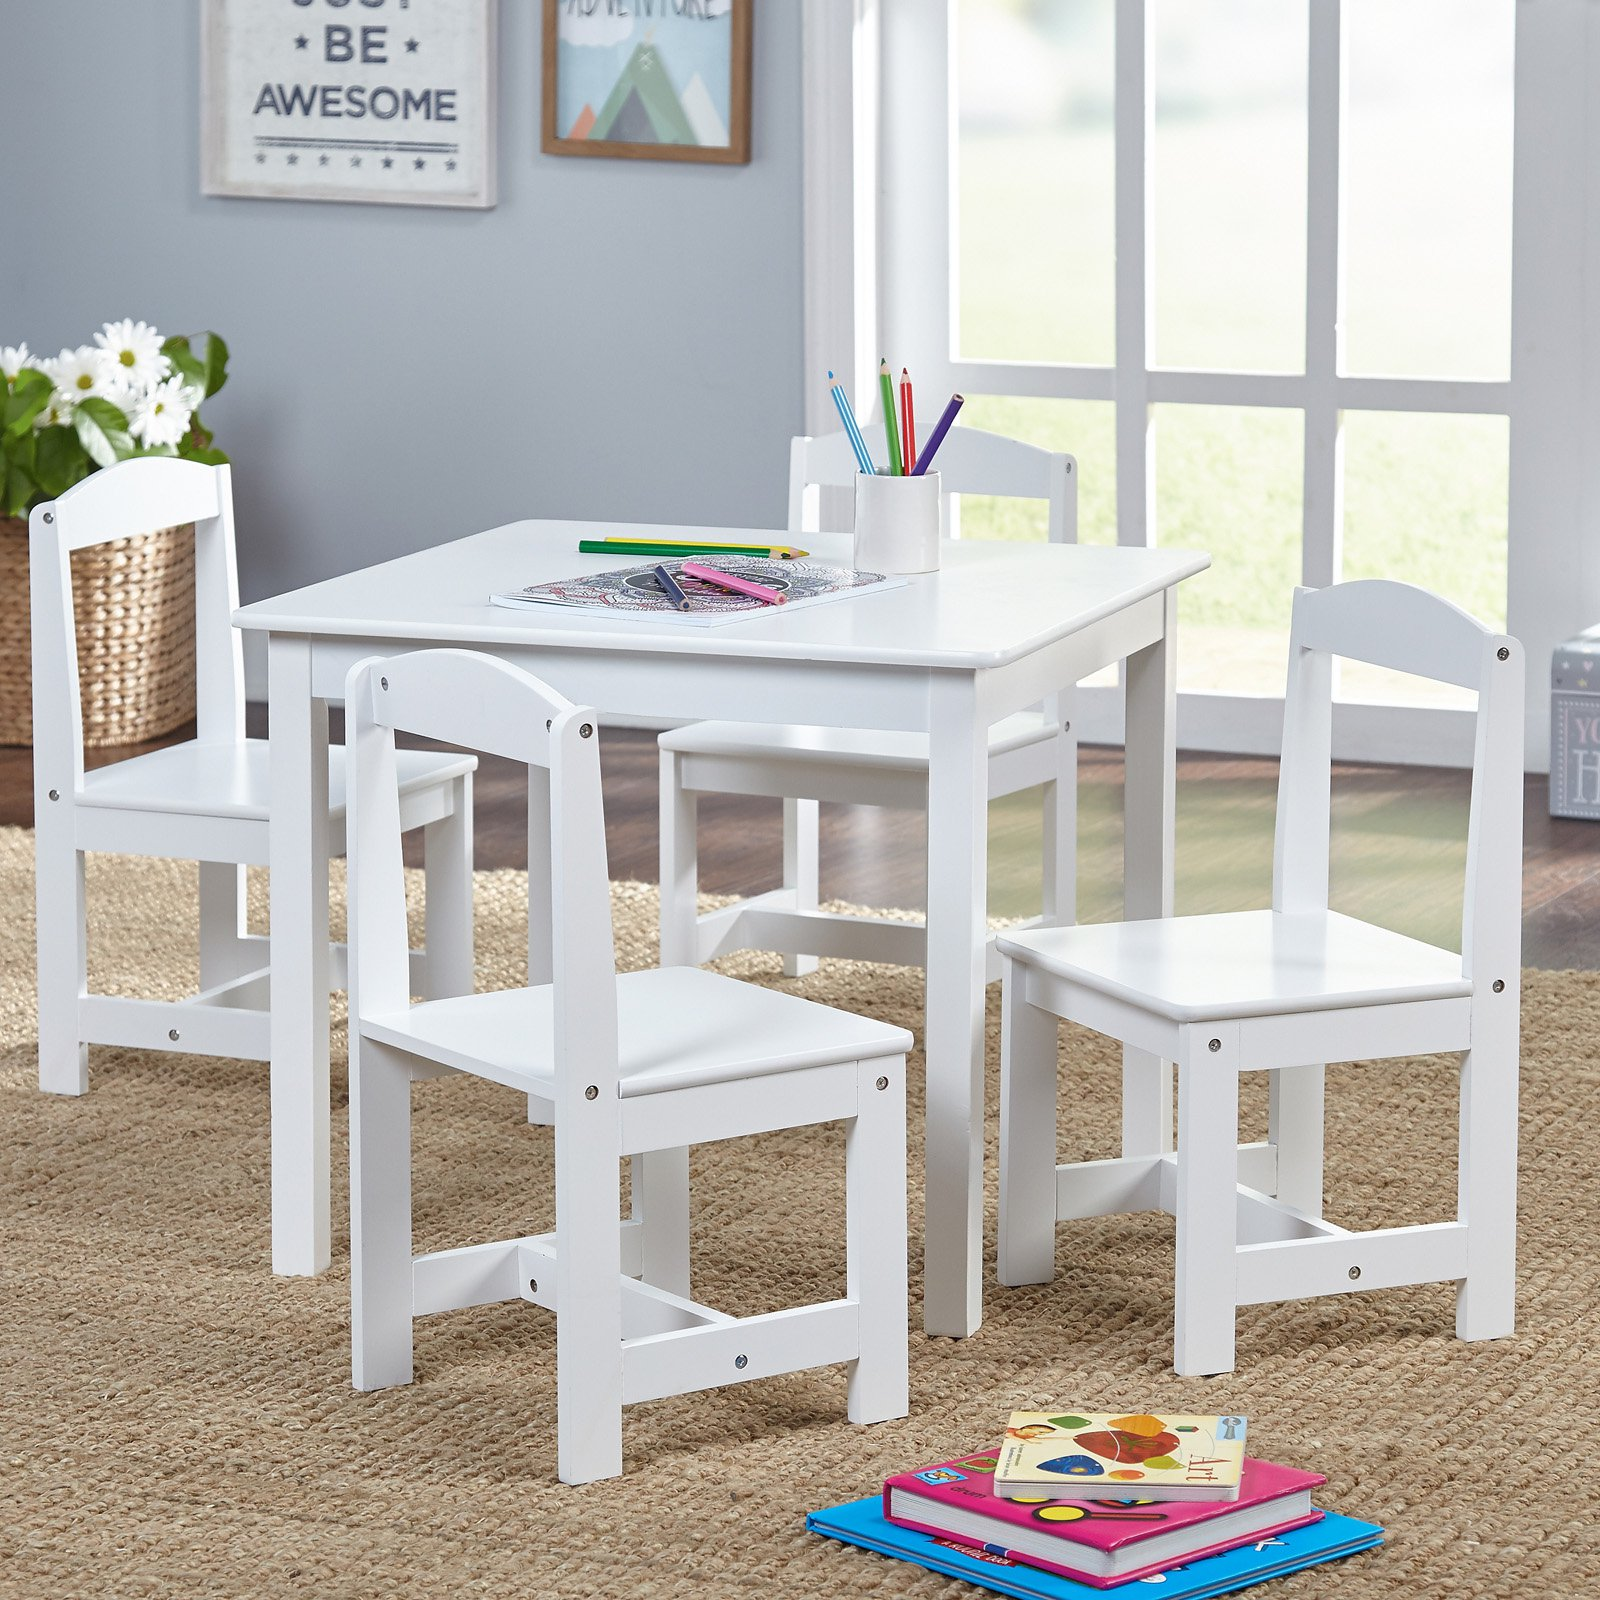 Target Marketing Systems Hayden 5 Piece Kids Table And Chair Set